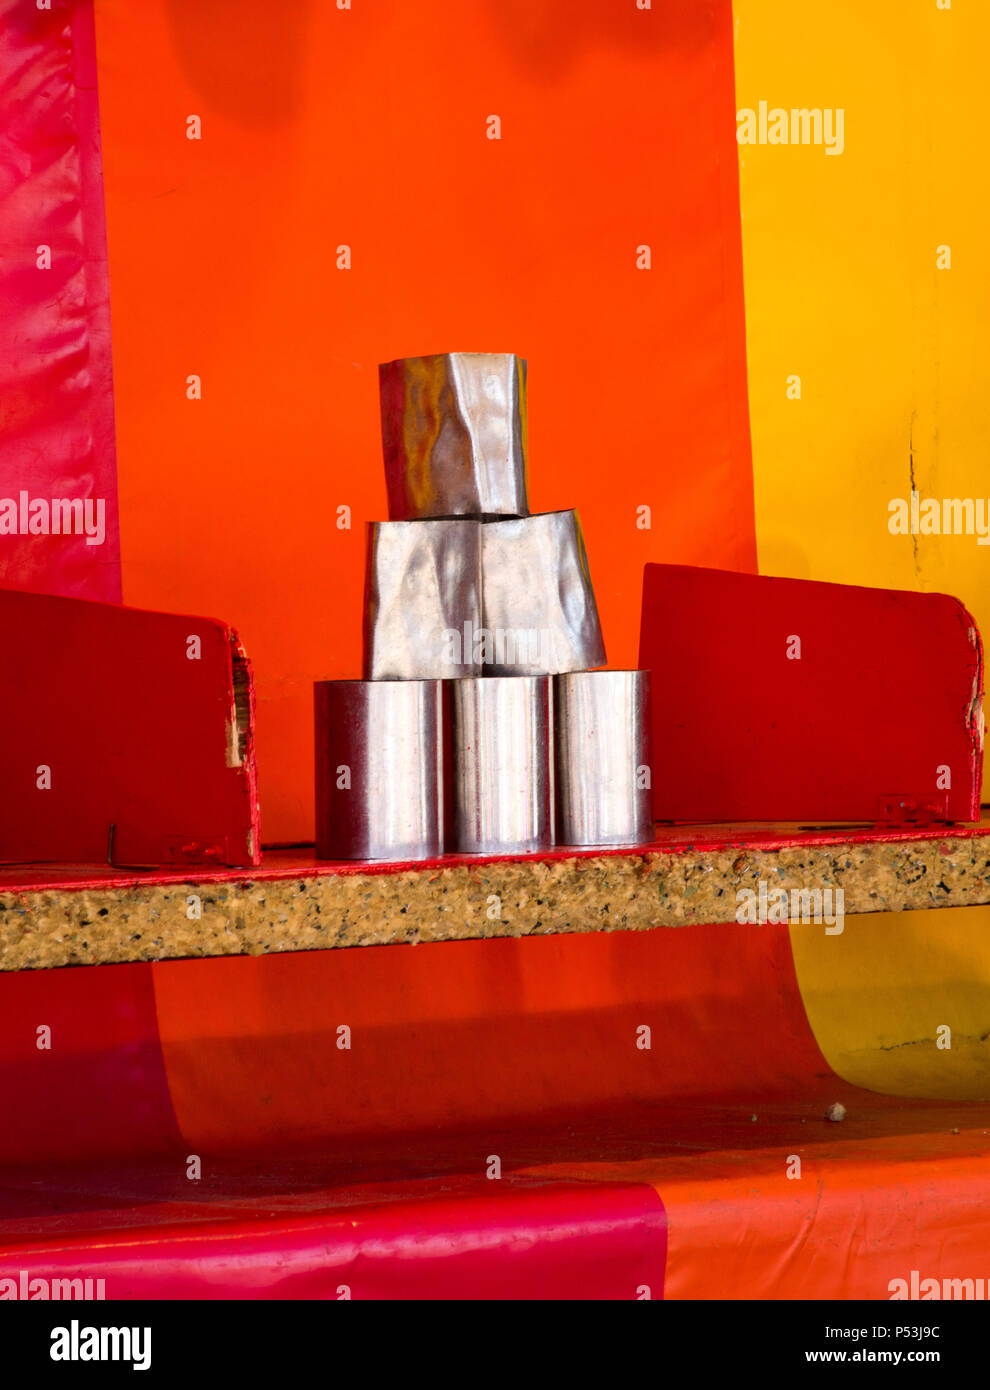 fun fair / amusement game of tin can alley where competitors have to knock all cans off the shelf to win a prize - Stock Image